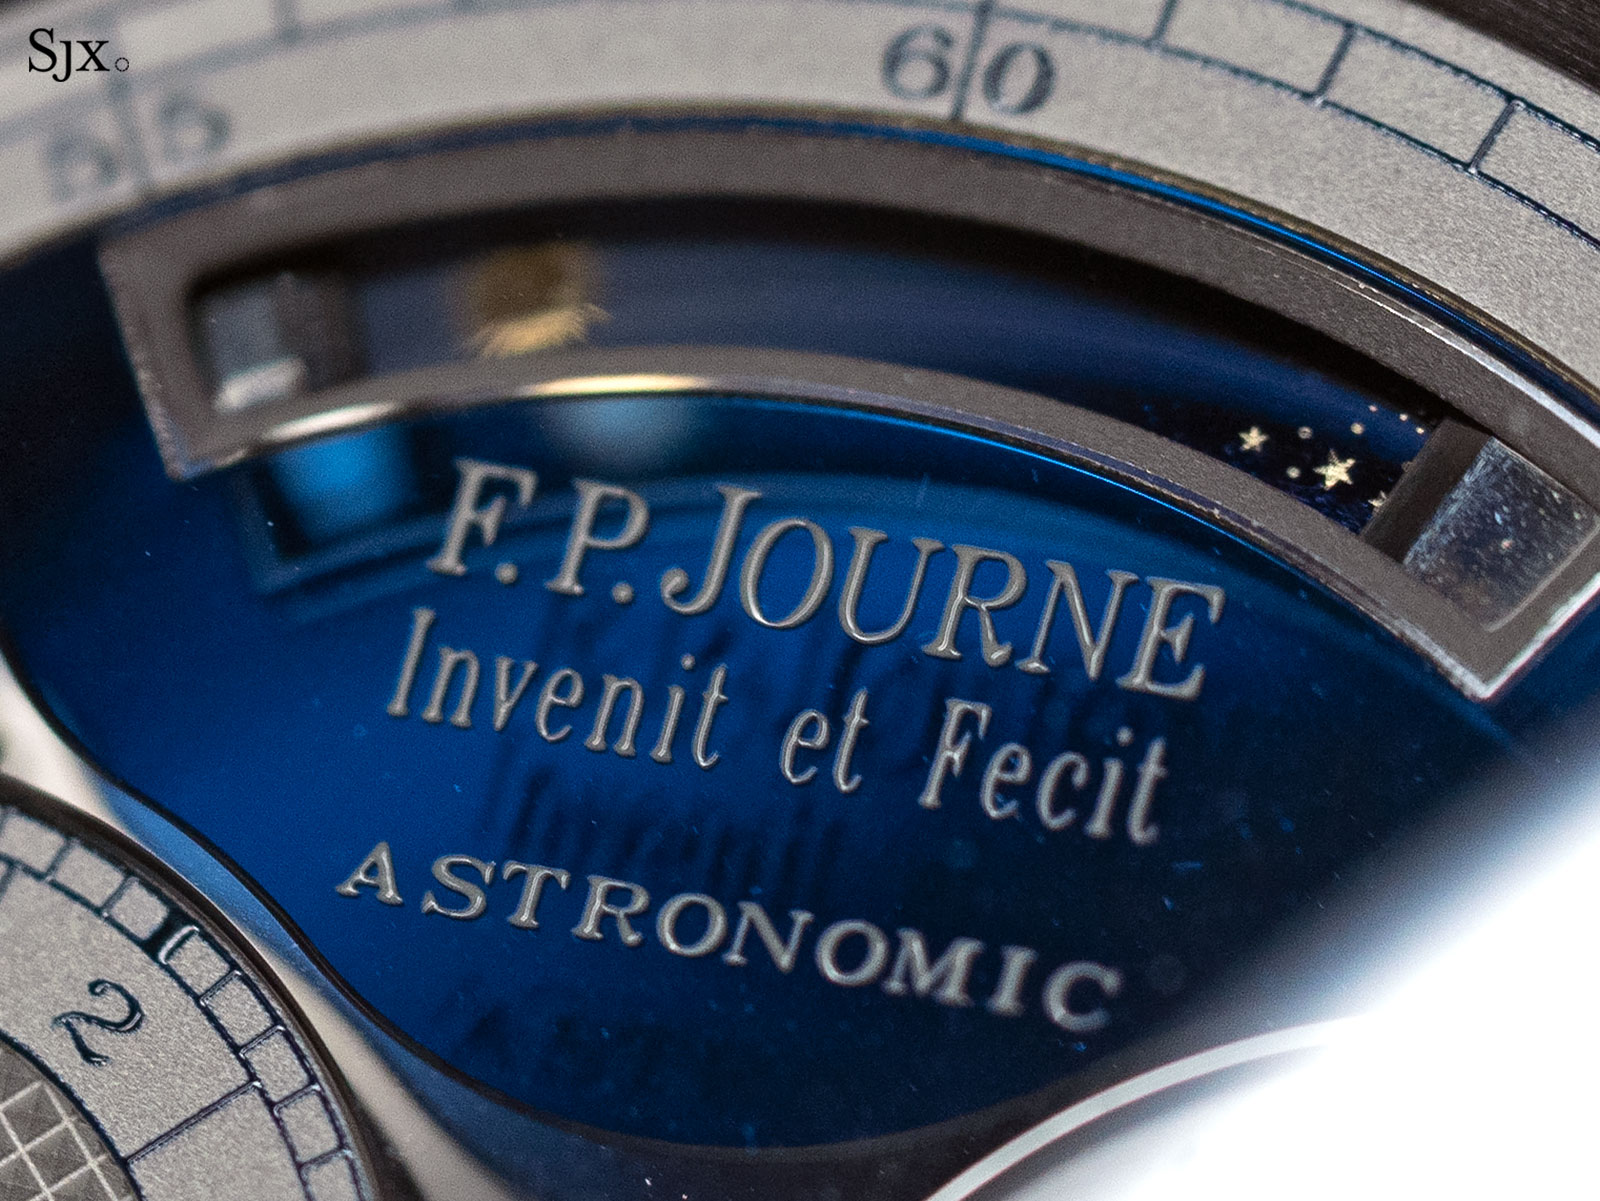 fp journe Astronomic Blue Only Watch 3